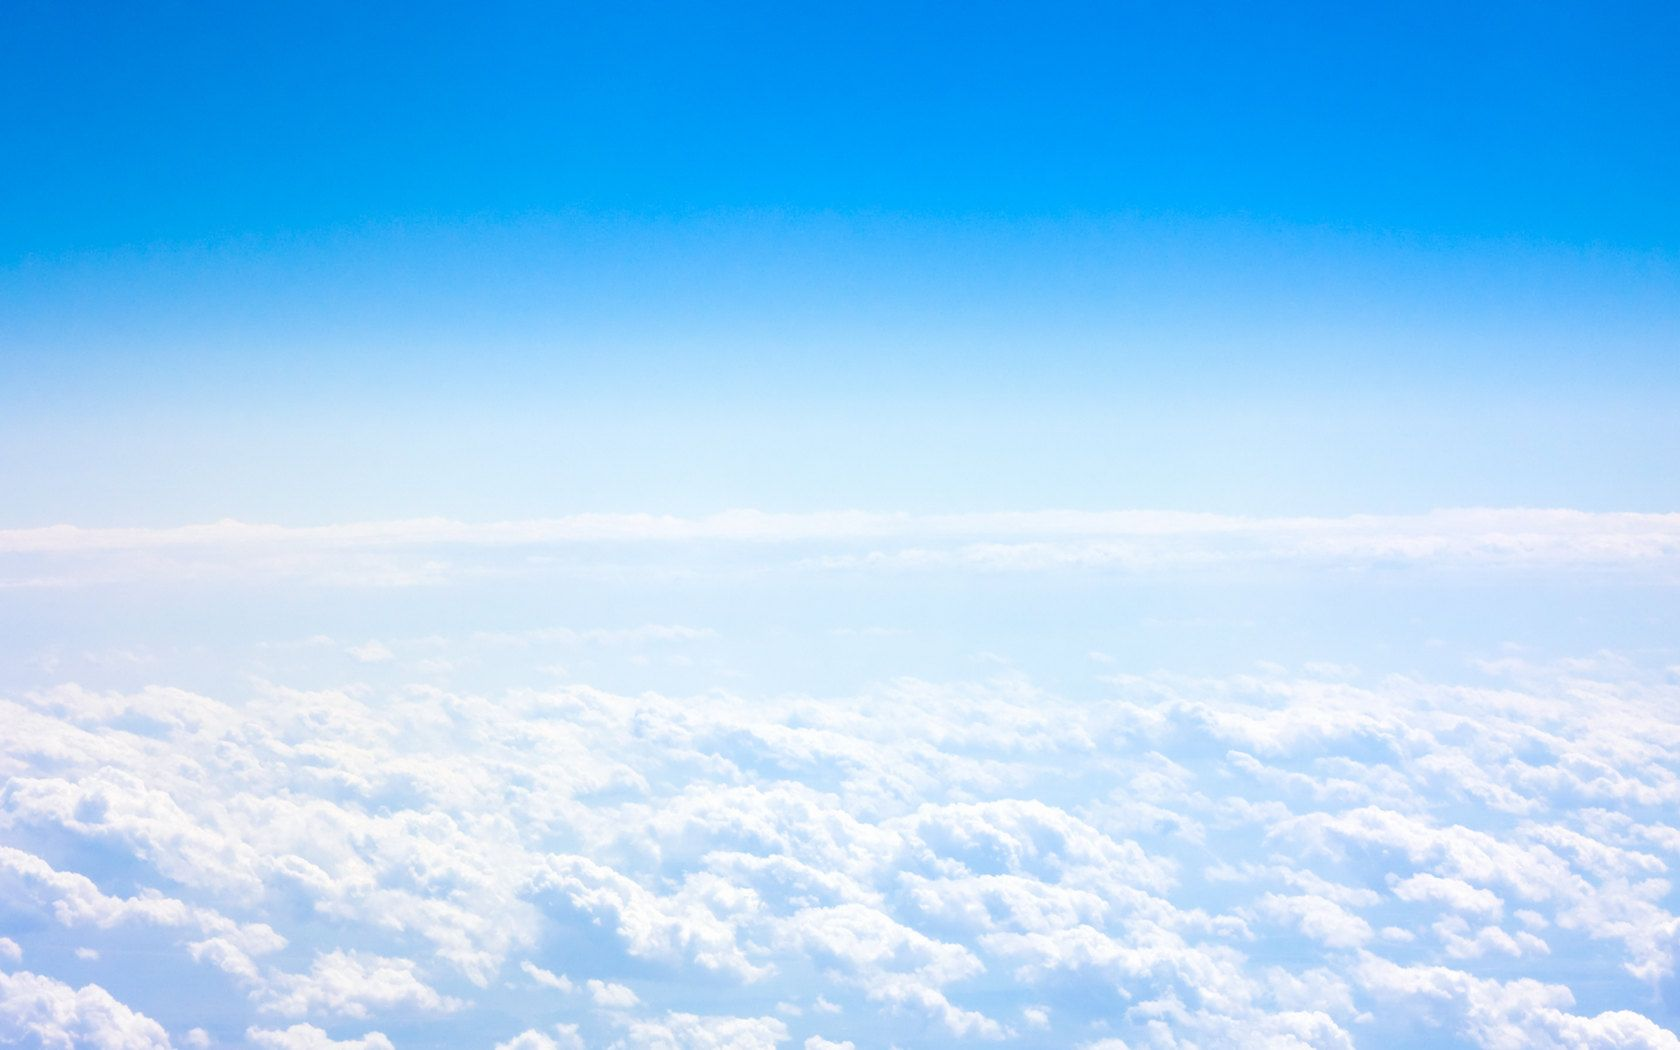 Sky And Clouds Wallpapers Top Free Sky And Clouds Backgrounds